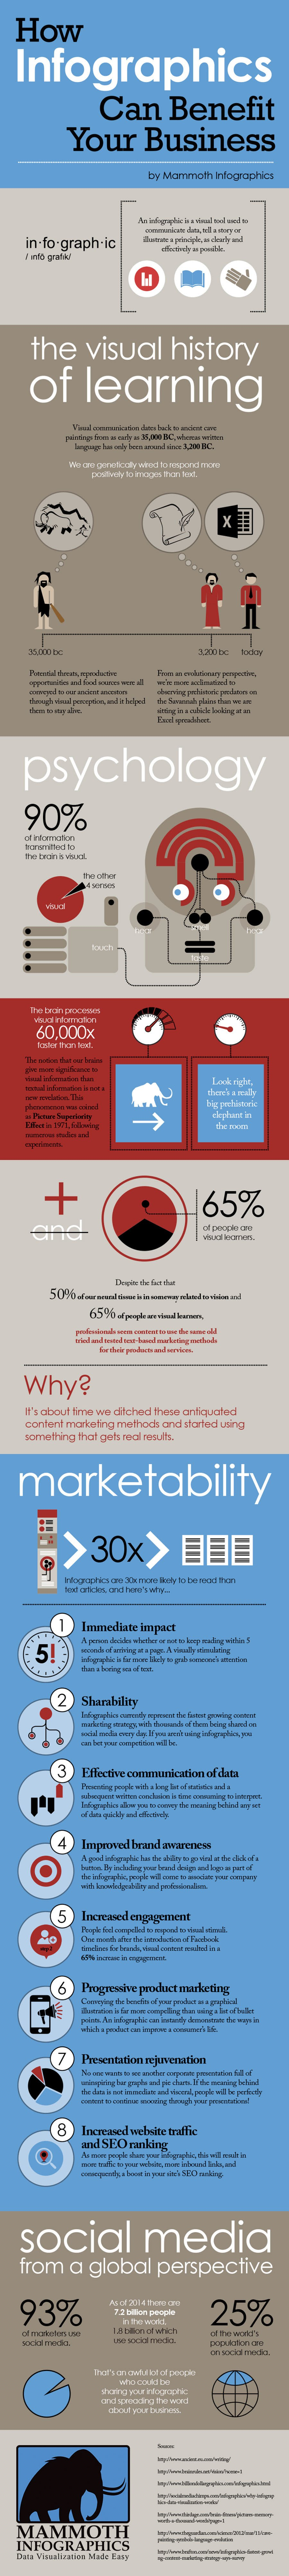 How Infographics Can Help Your Business - #infographic